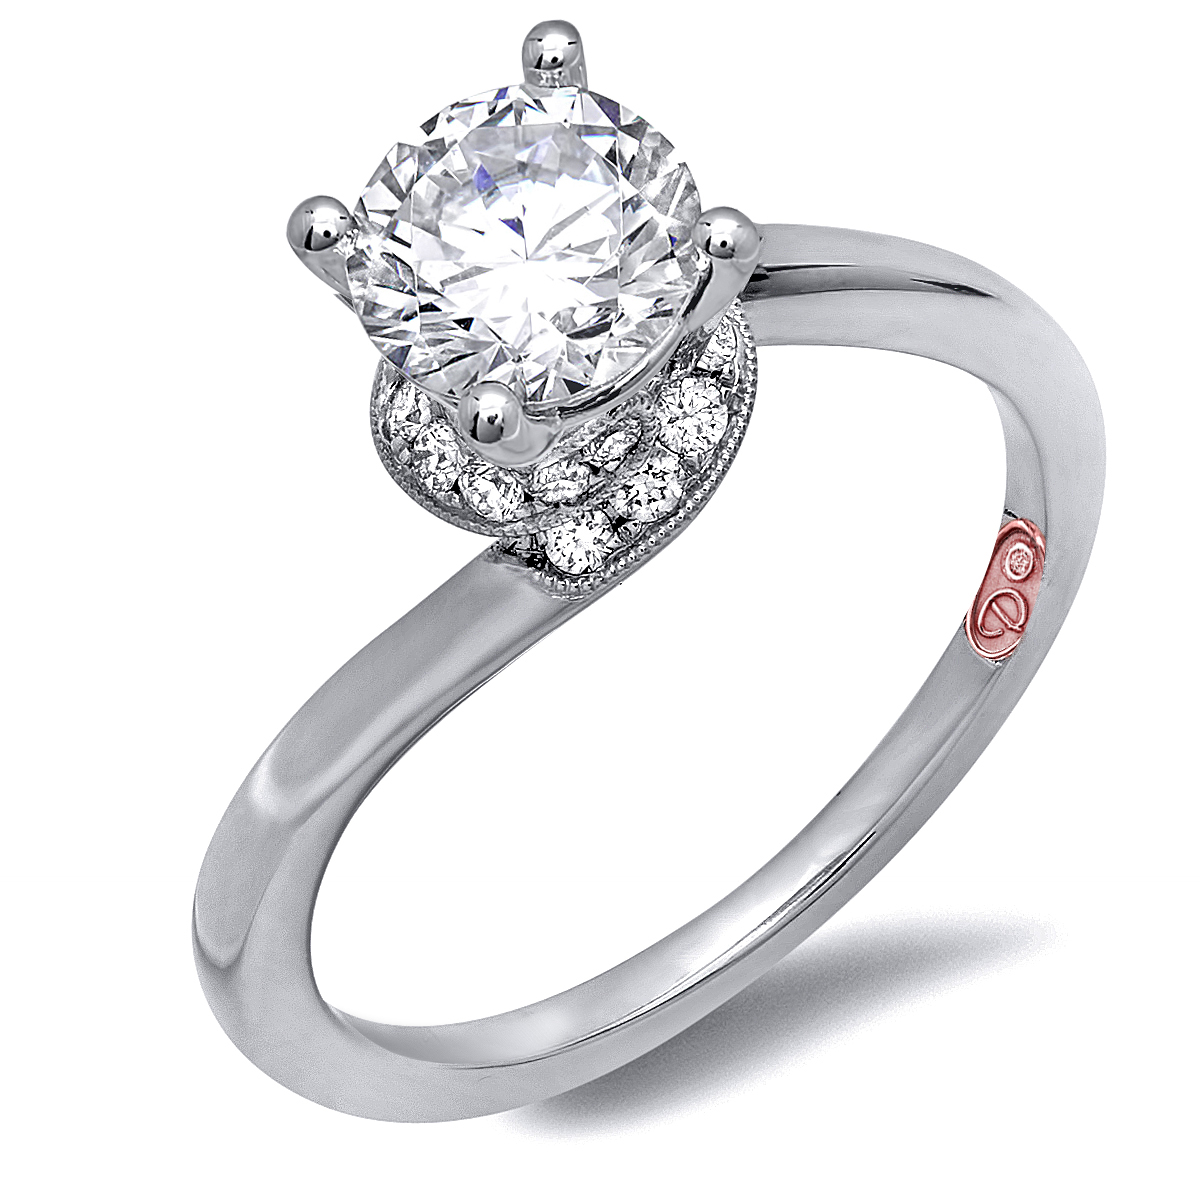 Designer Engagement Rings In Manchester